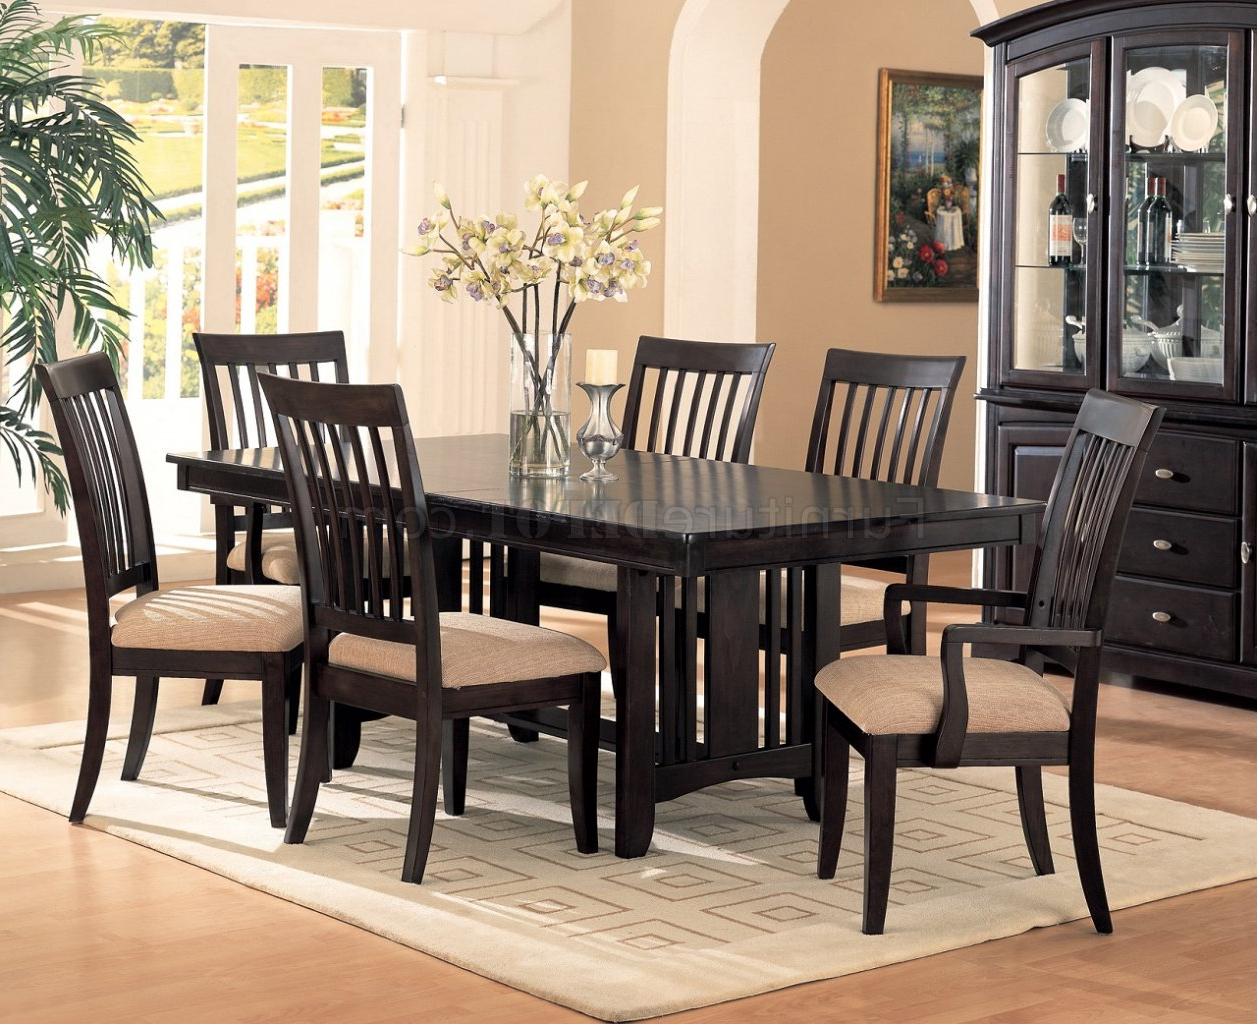 Cappuccino Finish Classic Dining Room Furniture With Regard To 2020 Cappuccino Finish Wood Classic Casual Dining Tables (View 11 of 25)